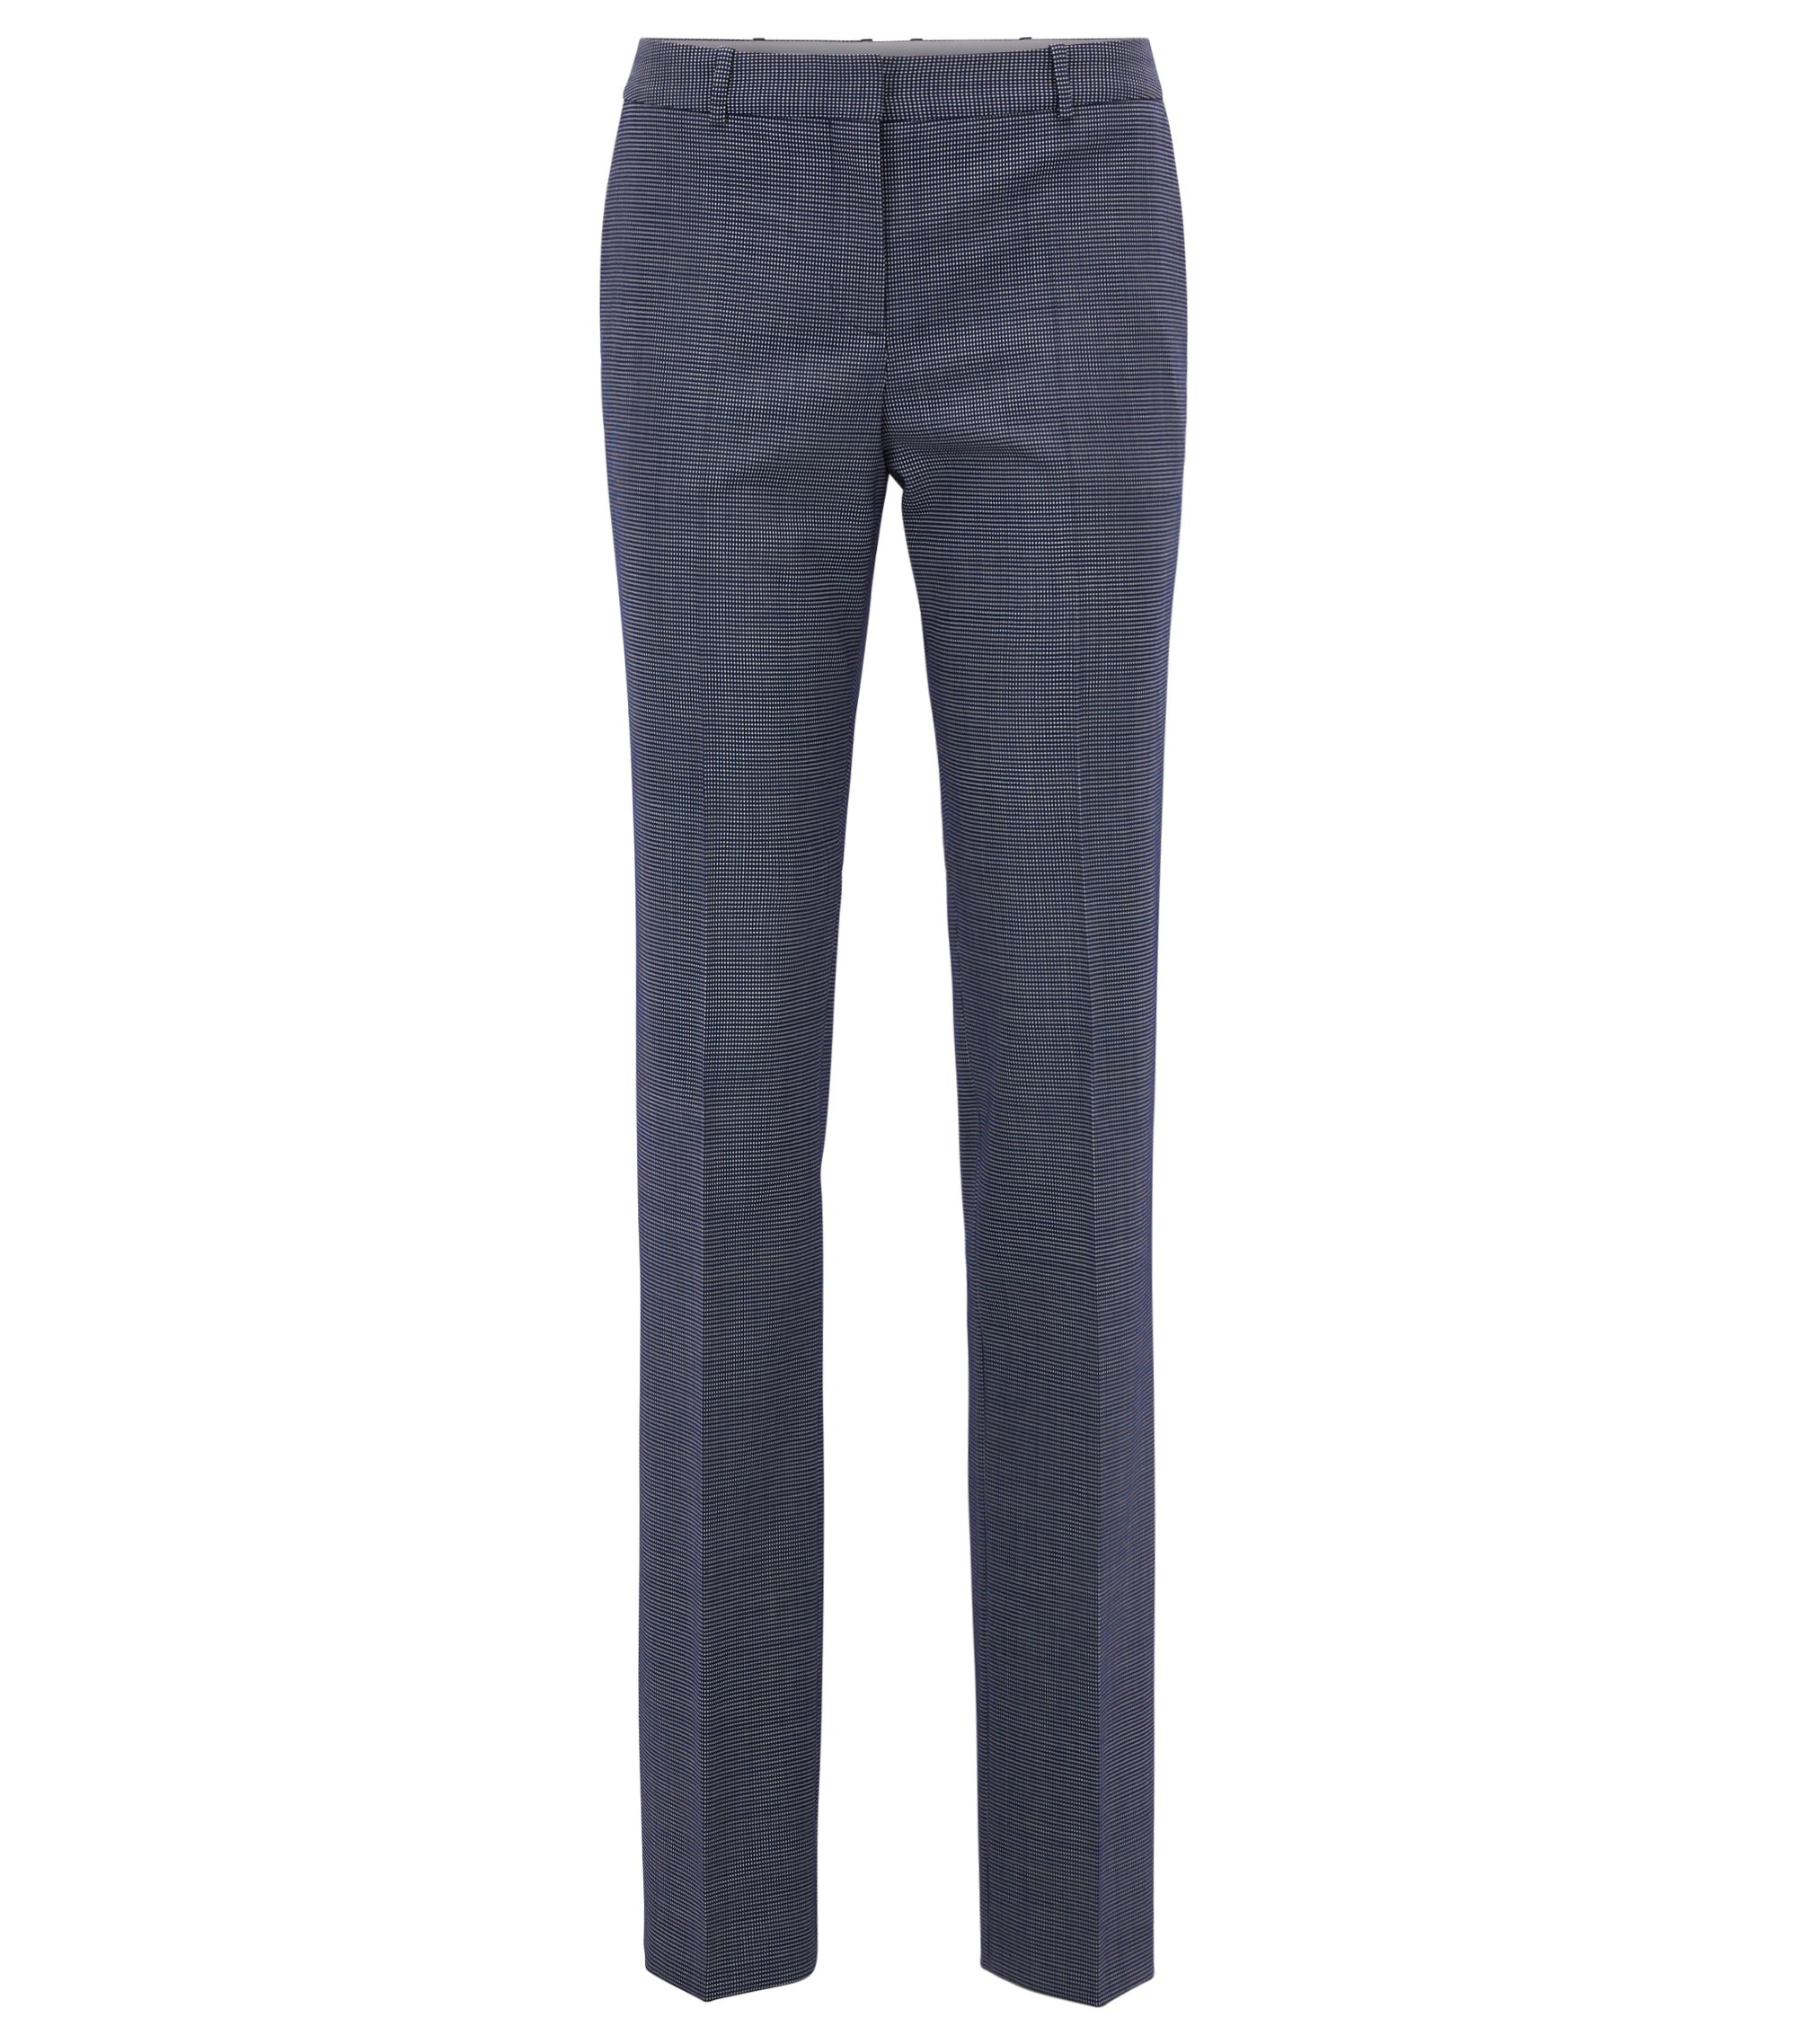 Patterned Stretch Virgin Wool Dress Pant | Tamea, Patterned